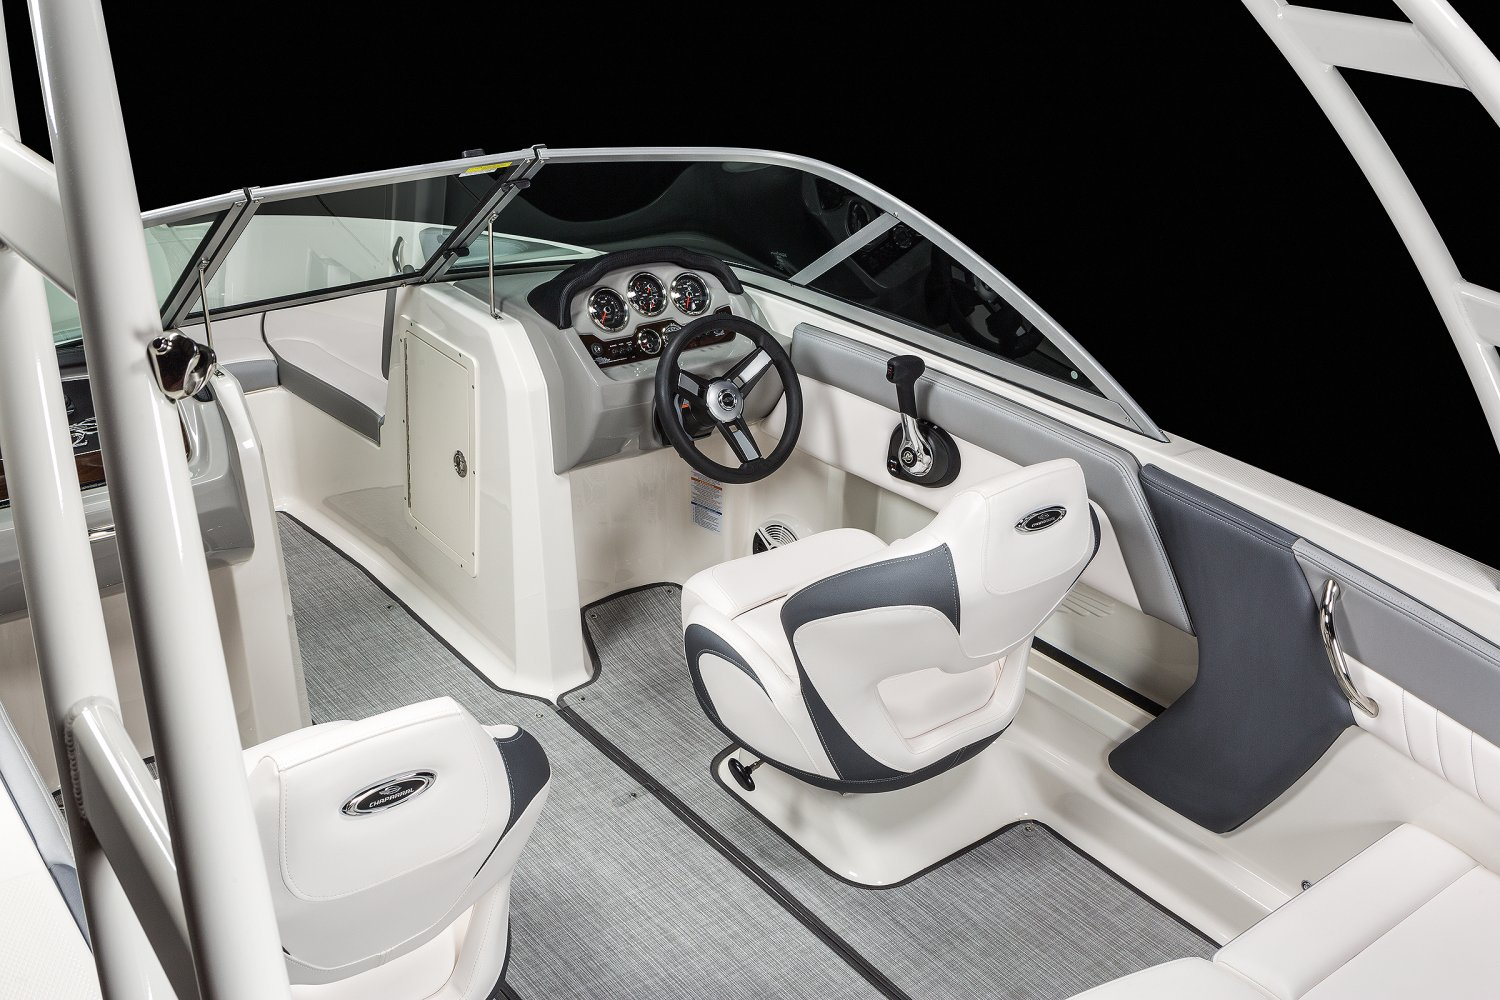 Image of a Lime Green - White 2019 19 Sport